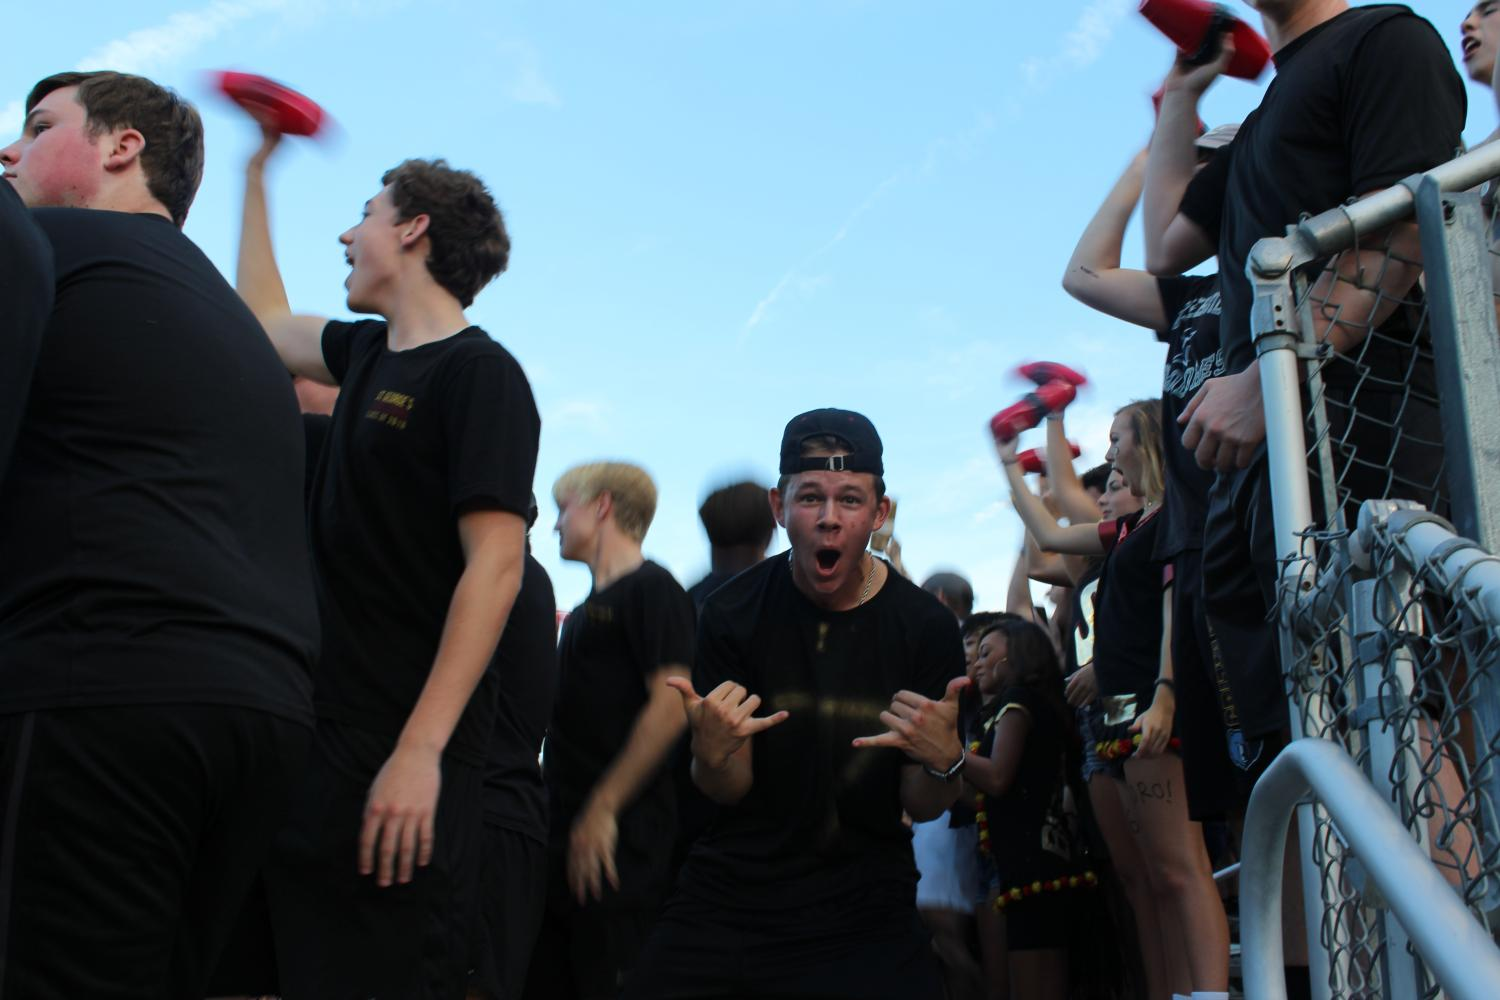 Prefect of Spirit Dalton Reese celebrates after a touchdown for the Gryphons. The student section was lively and clothed head to toe in black on Friday for the first home game of the season.